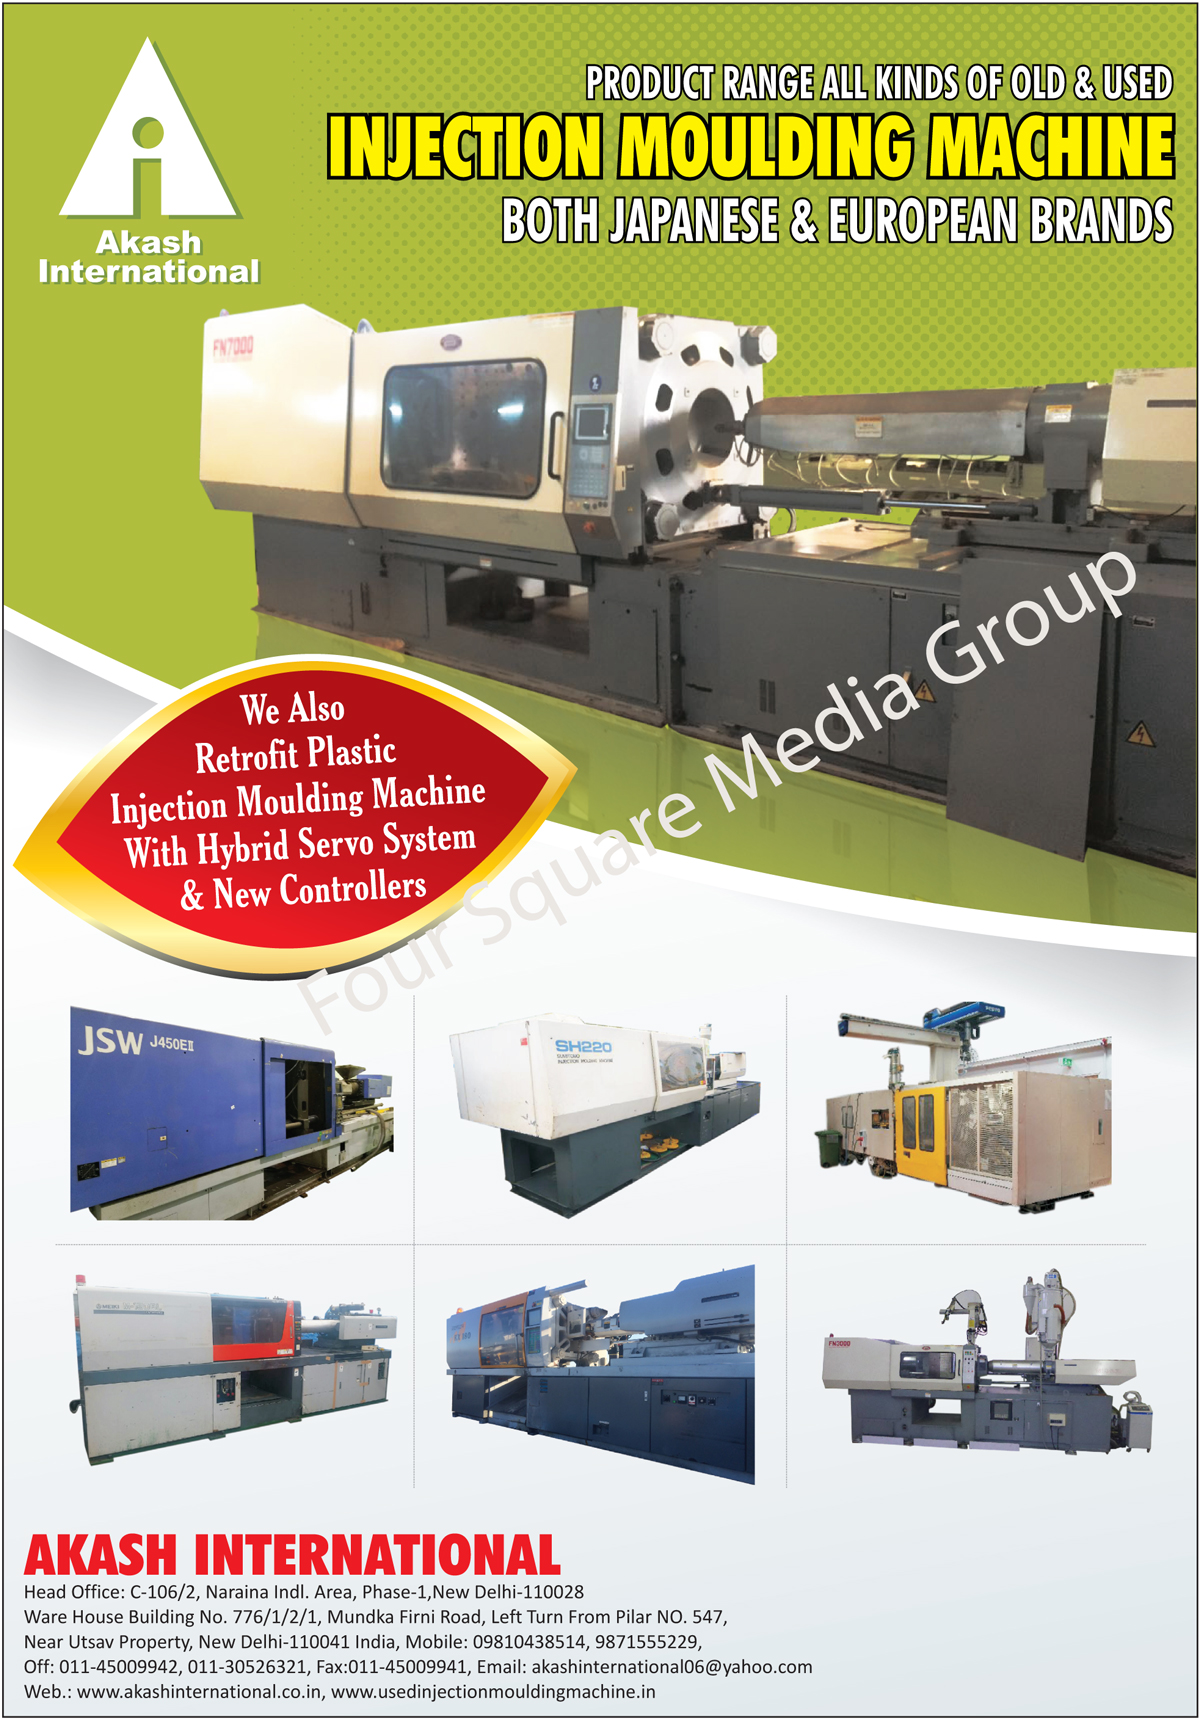 Injection Moulding Machines, Used Injection Moulding Machines, Injection Molding Machines, Used Injection Molding Machines, Retrofit Injection Moulding Machines, Retrofit Injection Molding Machines